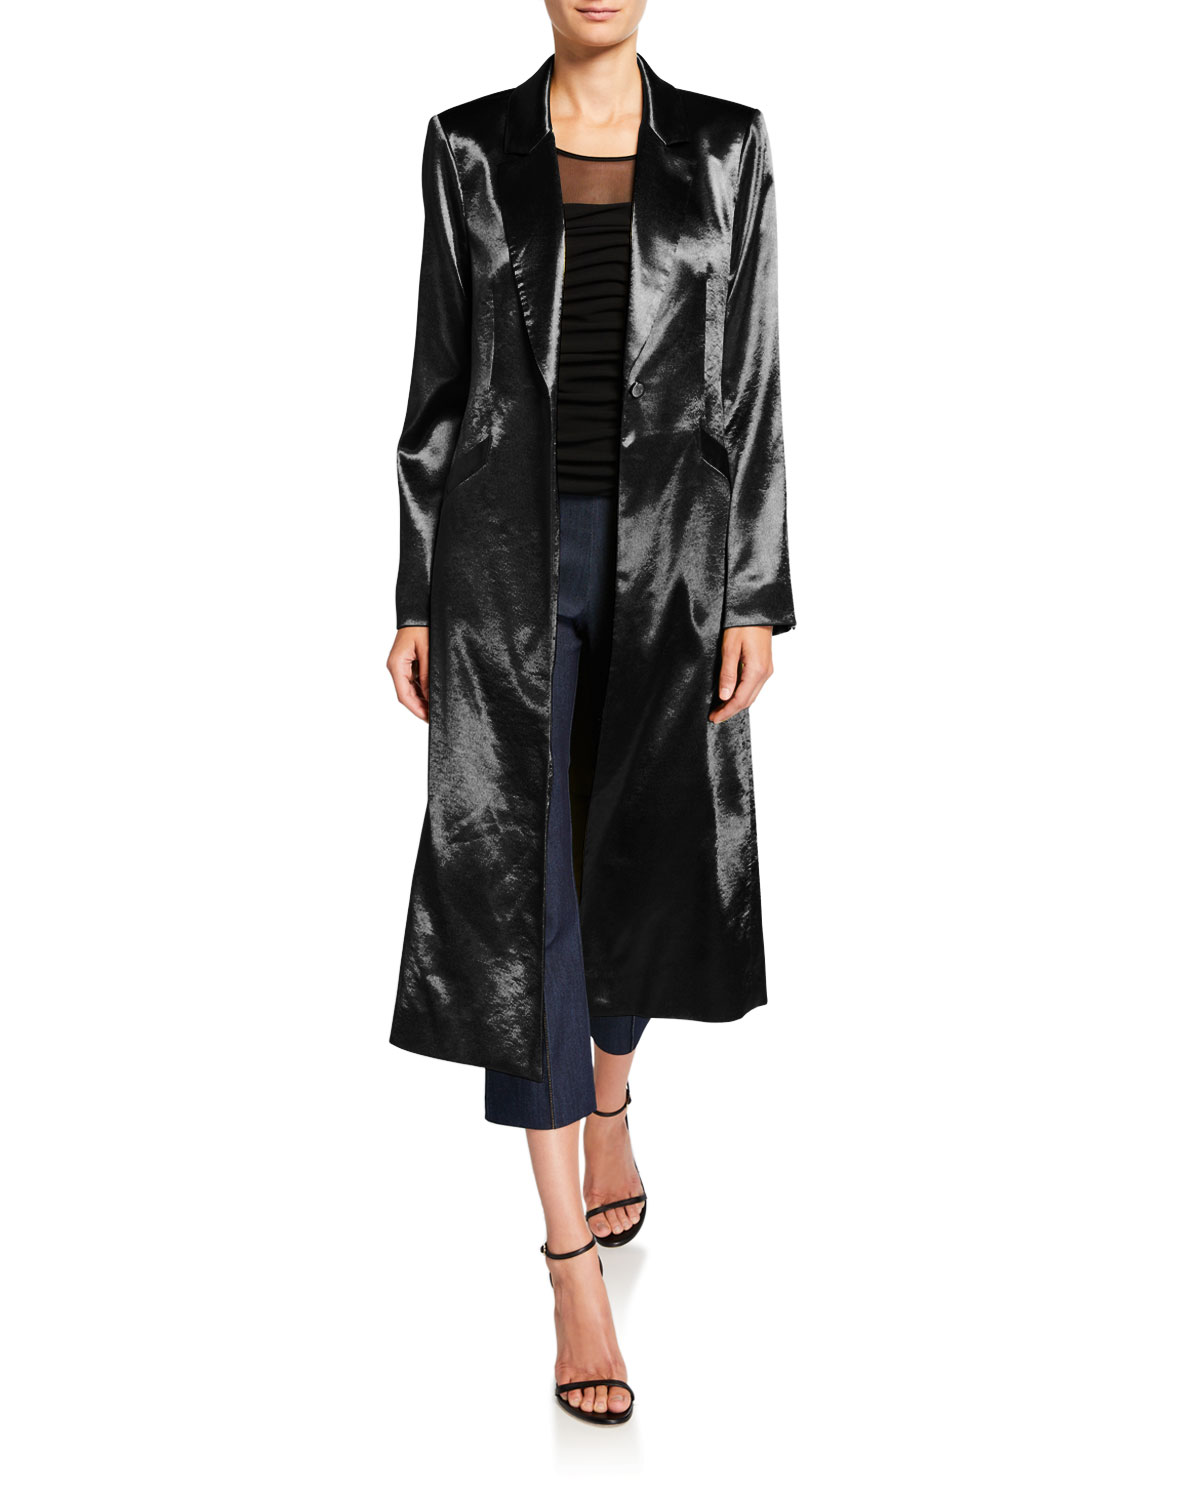 Vicky Satin Single-Button Duster Coat